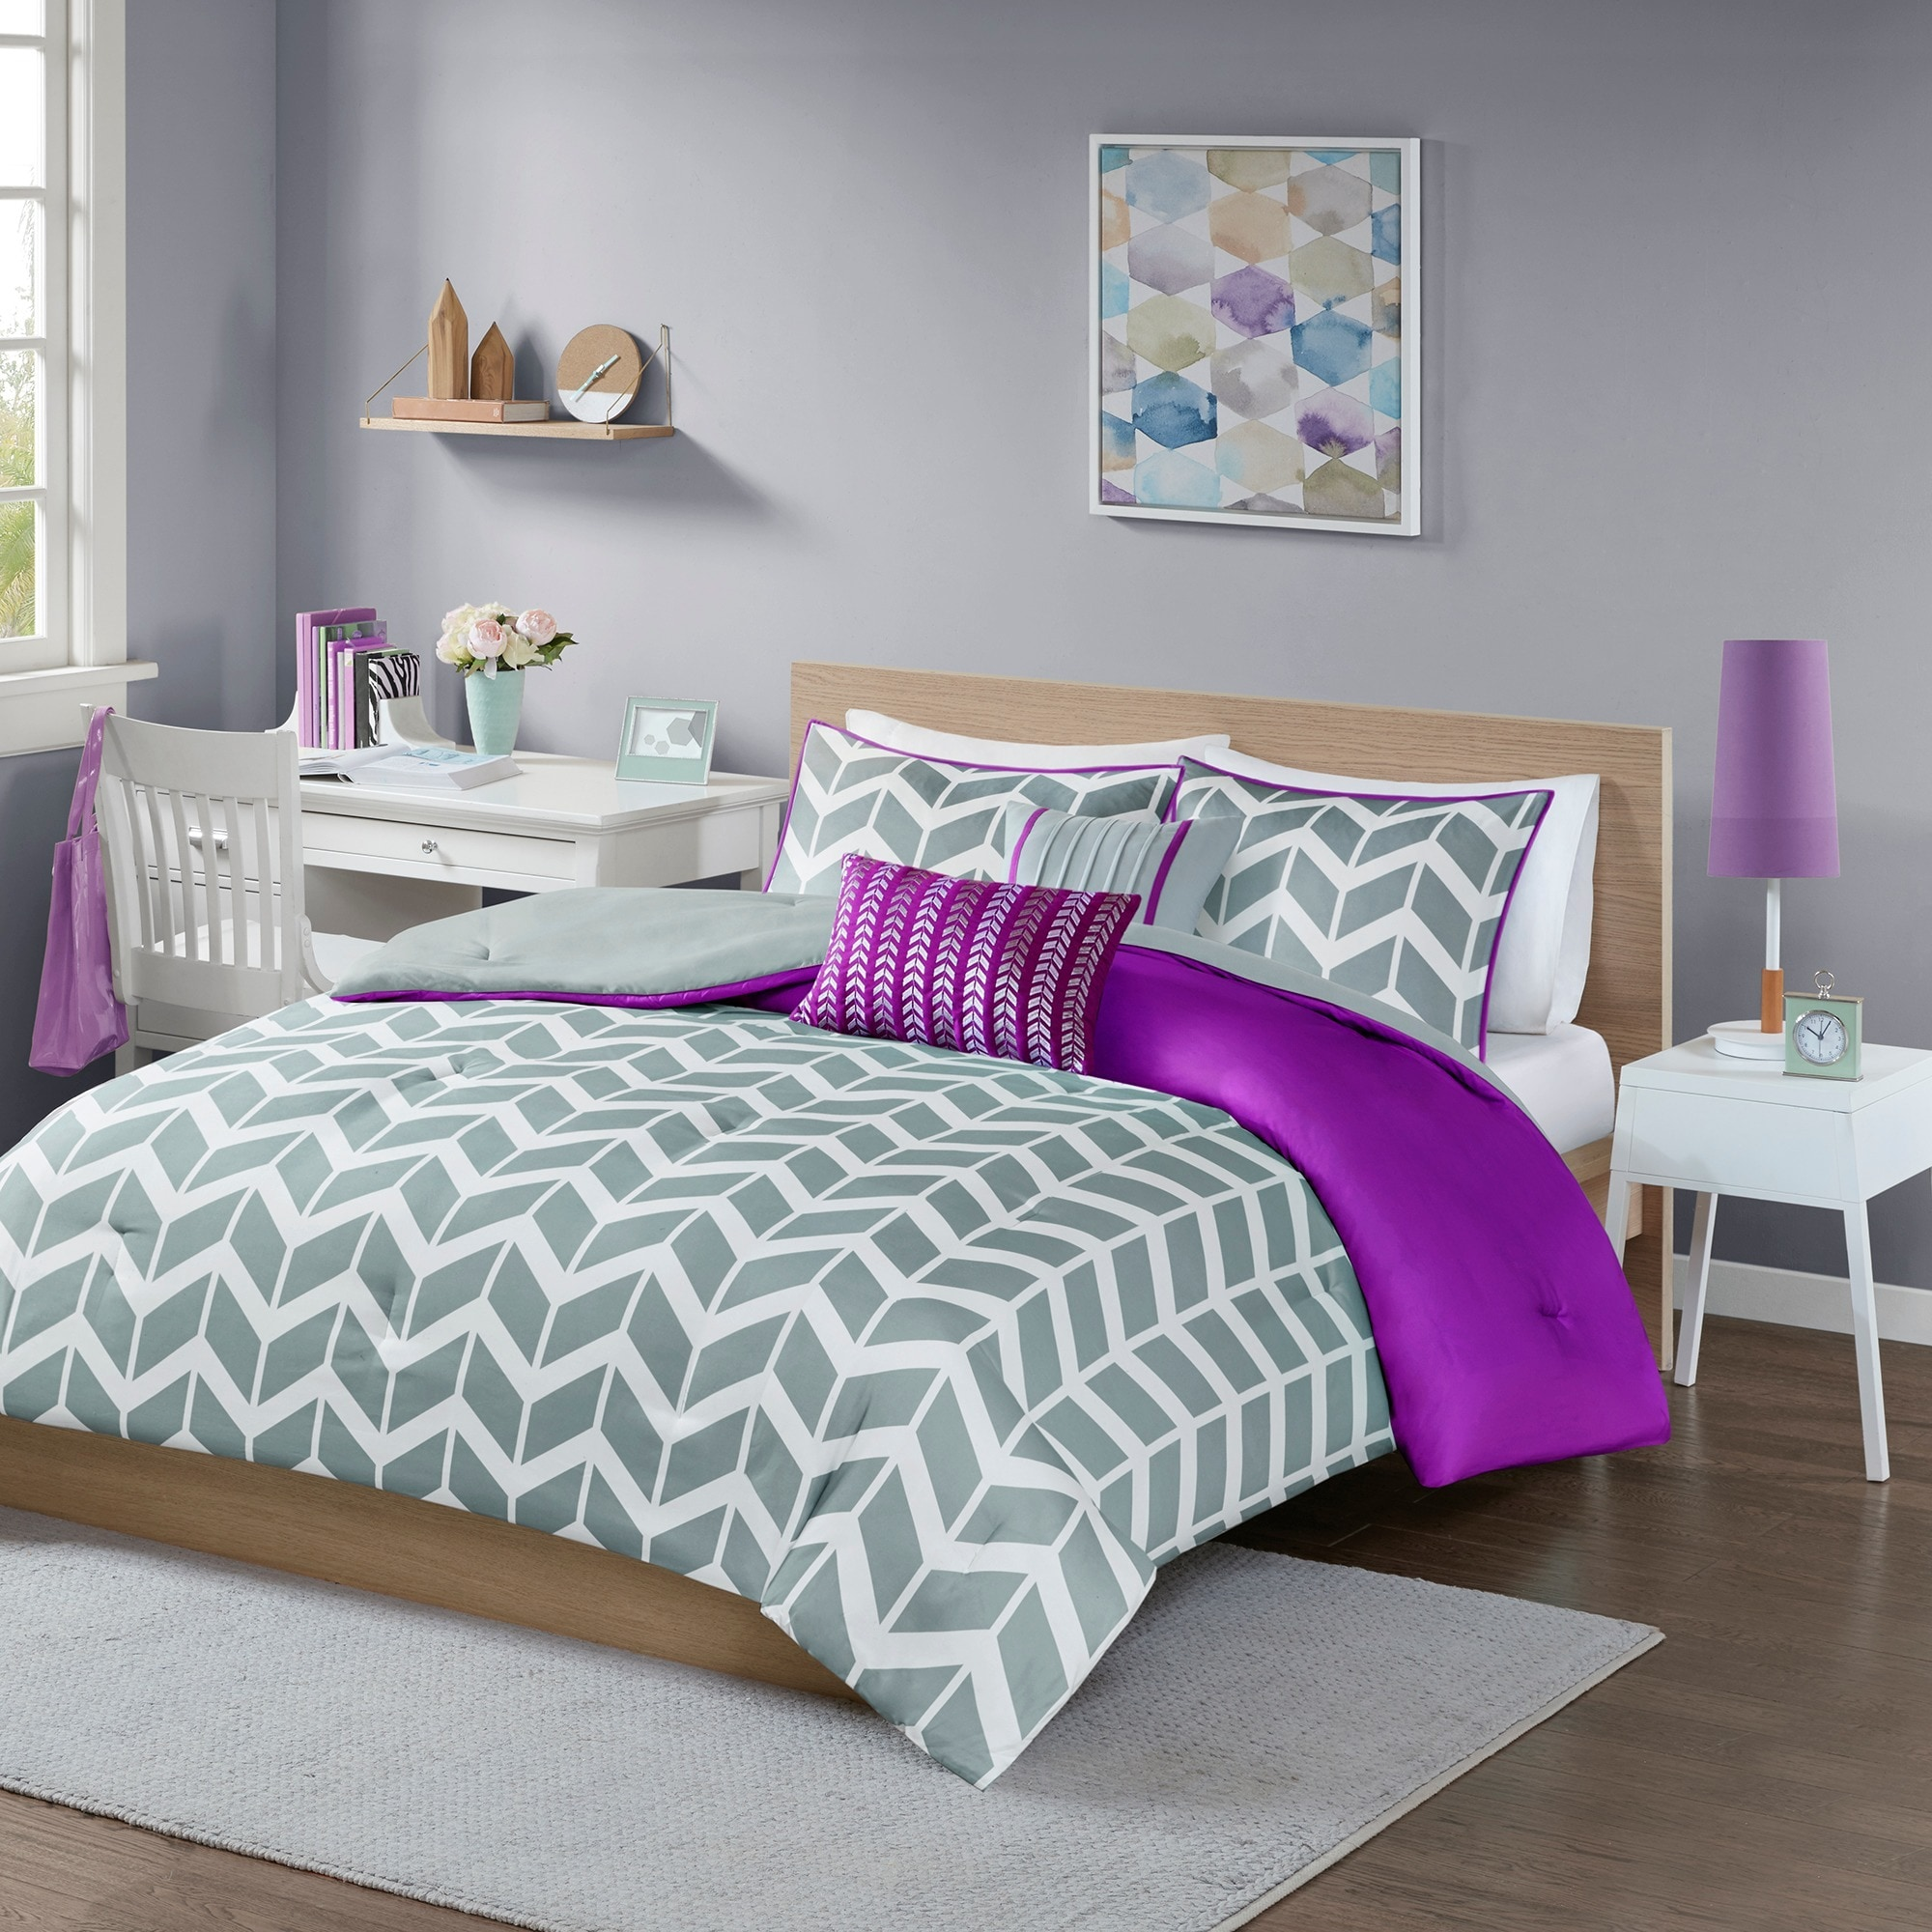 sheets multi medallion king for stunning chic size color sets bed comforter comforters ki bedroom blue ideas purple extraordinary walmart geometric appealing twin decoration queen bedding